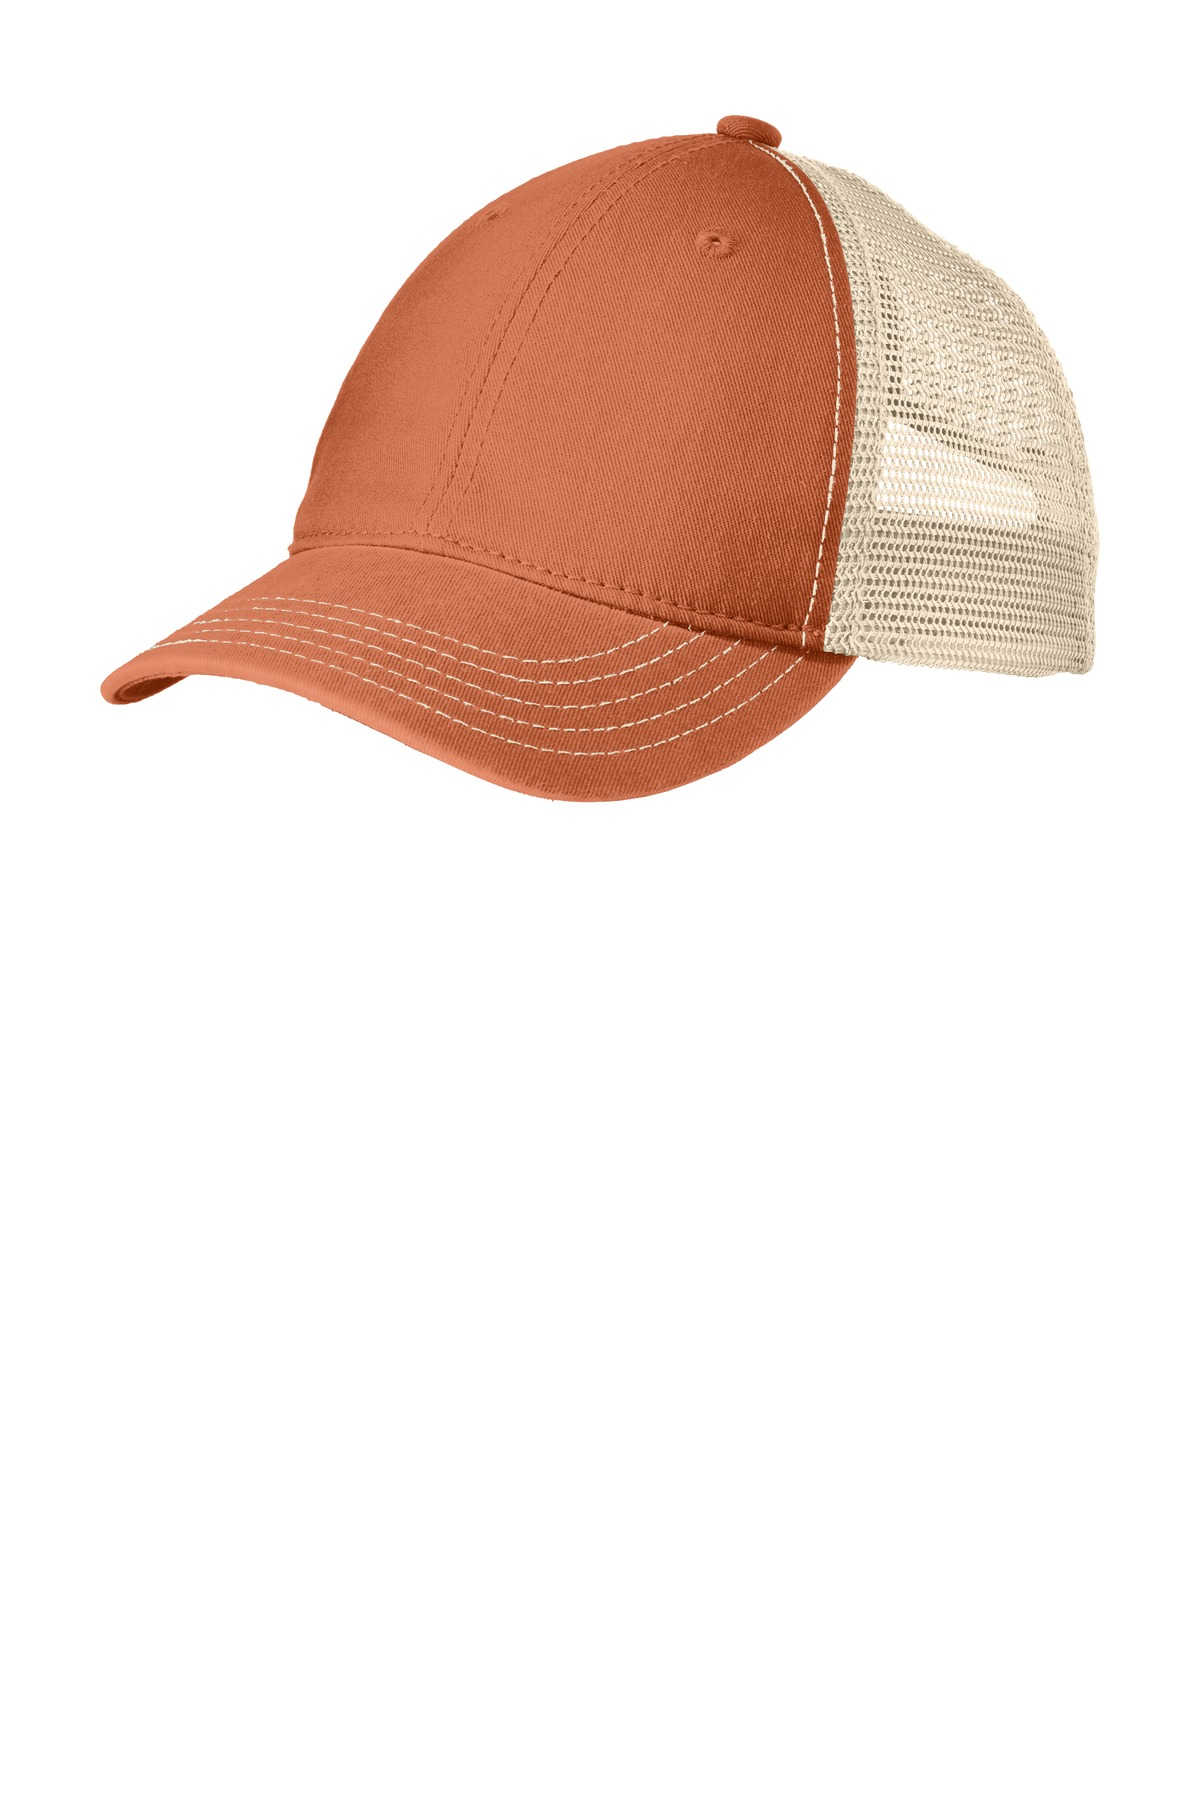 District ®  Super Soft Mesh Back Cap. DT630 - Burnt Orange/ Stone